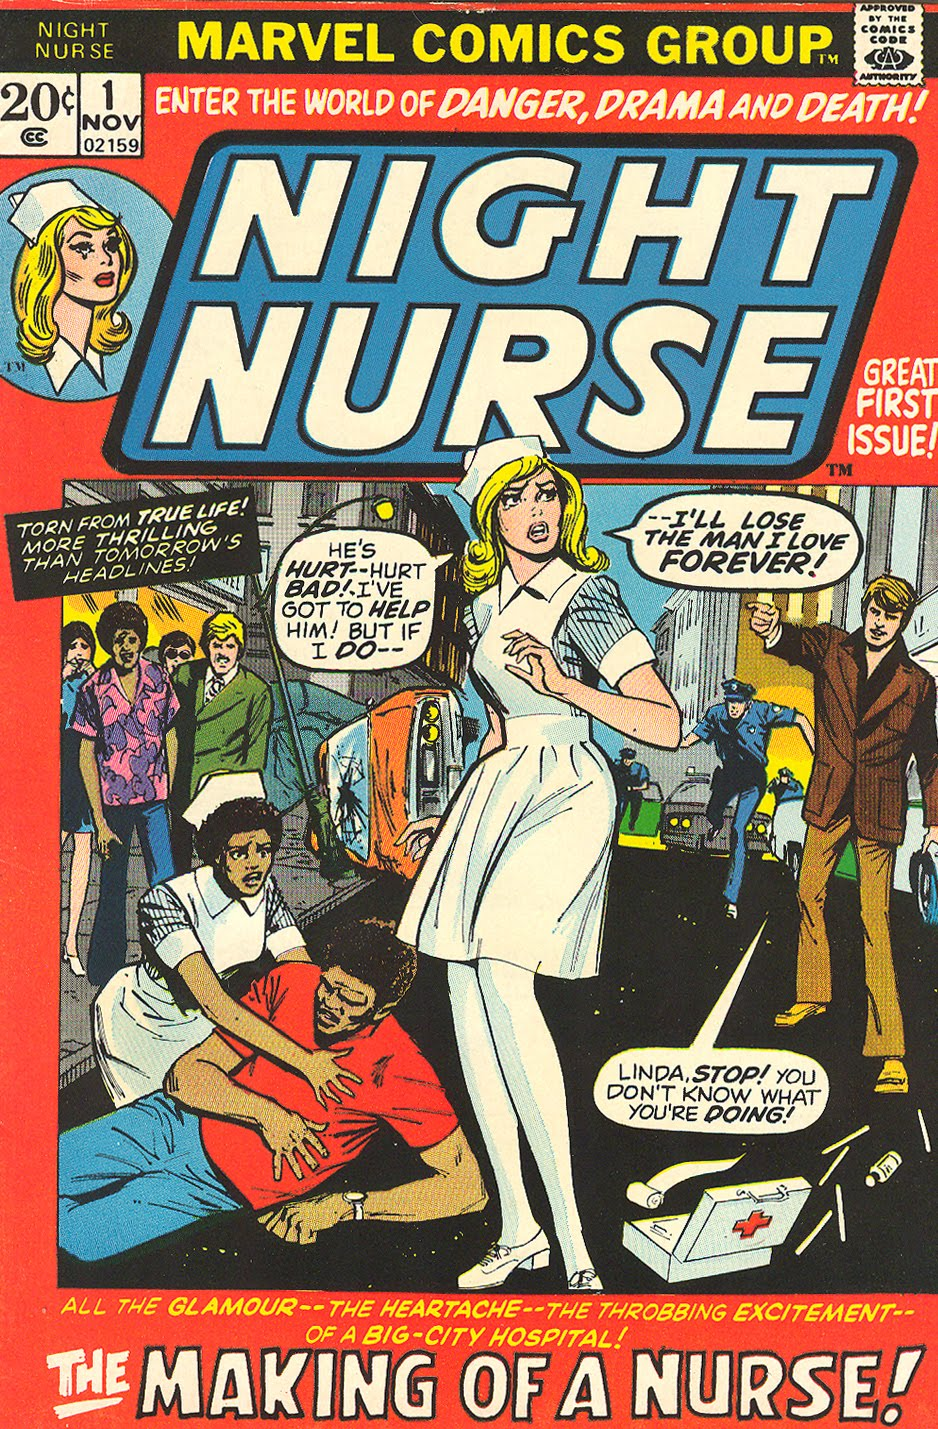 Linda Night Nurse Marvel Comics Romance Vintage 1970s Win Mortimer